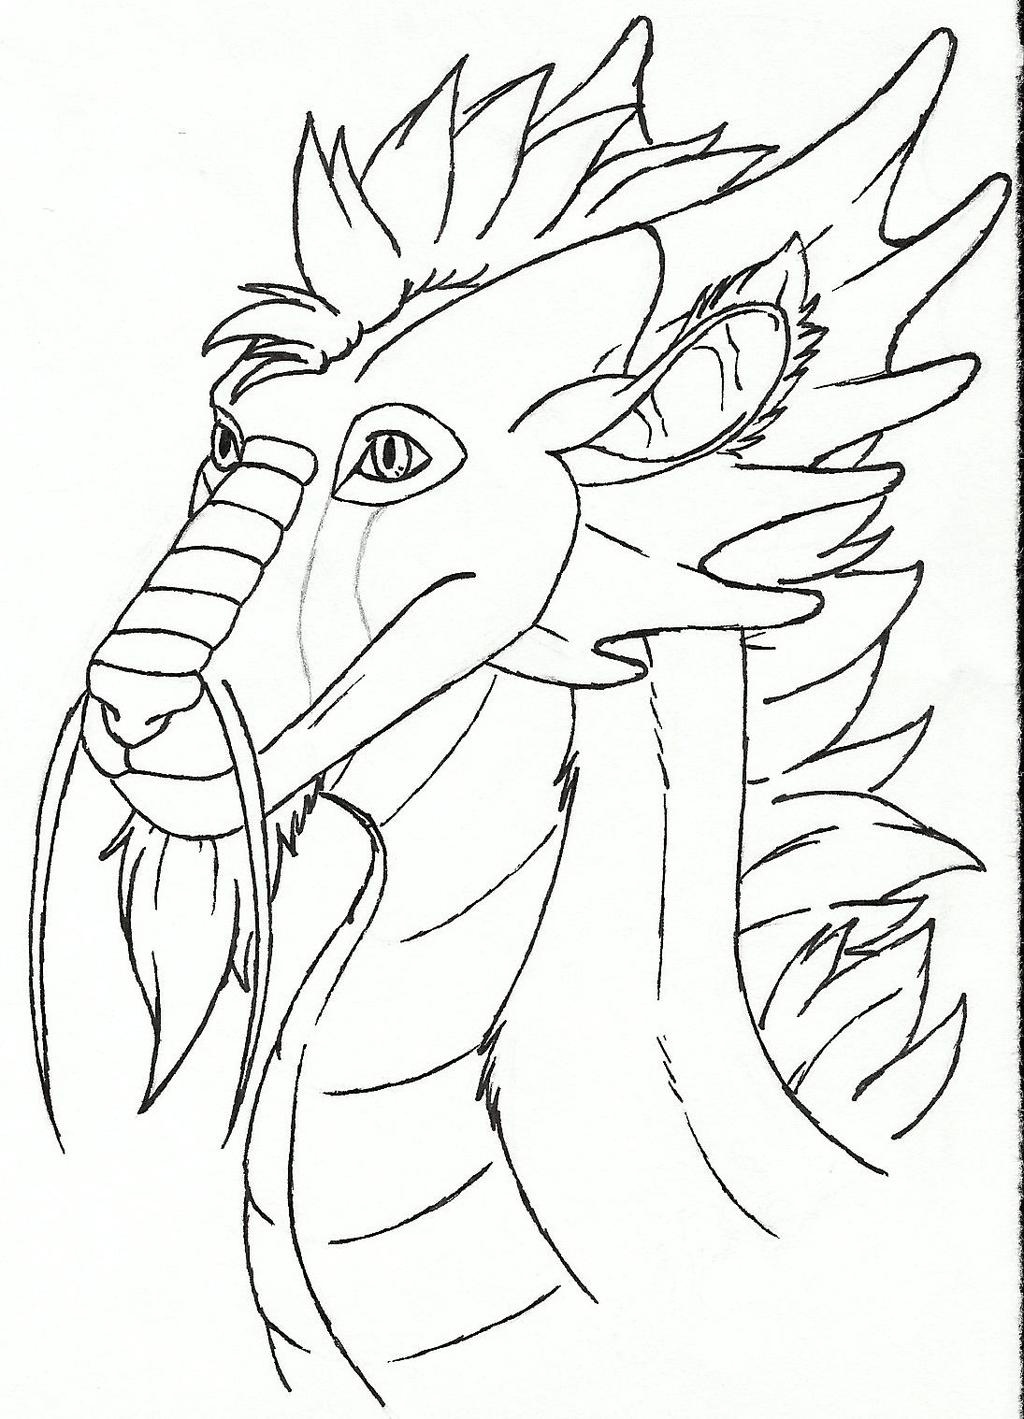 Dragon head: 3/4 view (Ink)